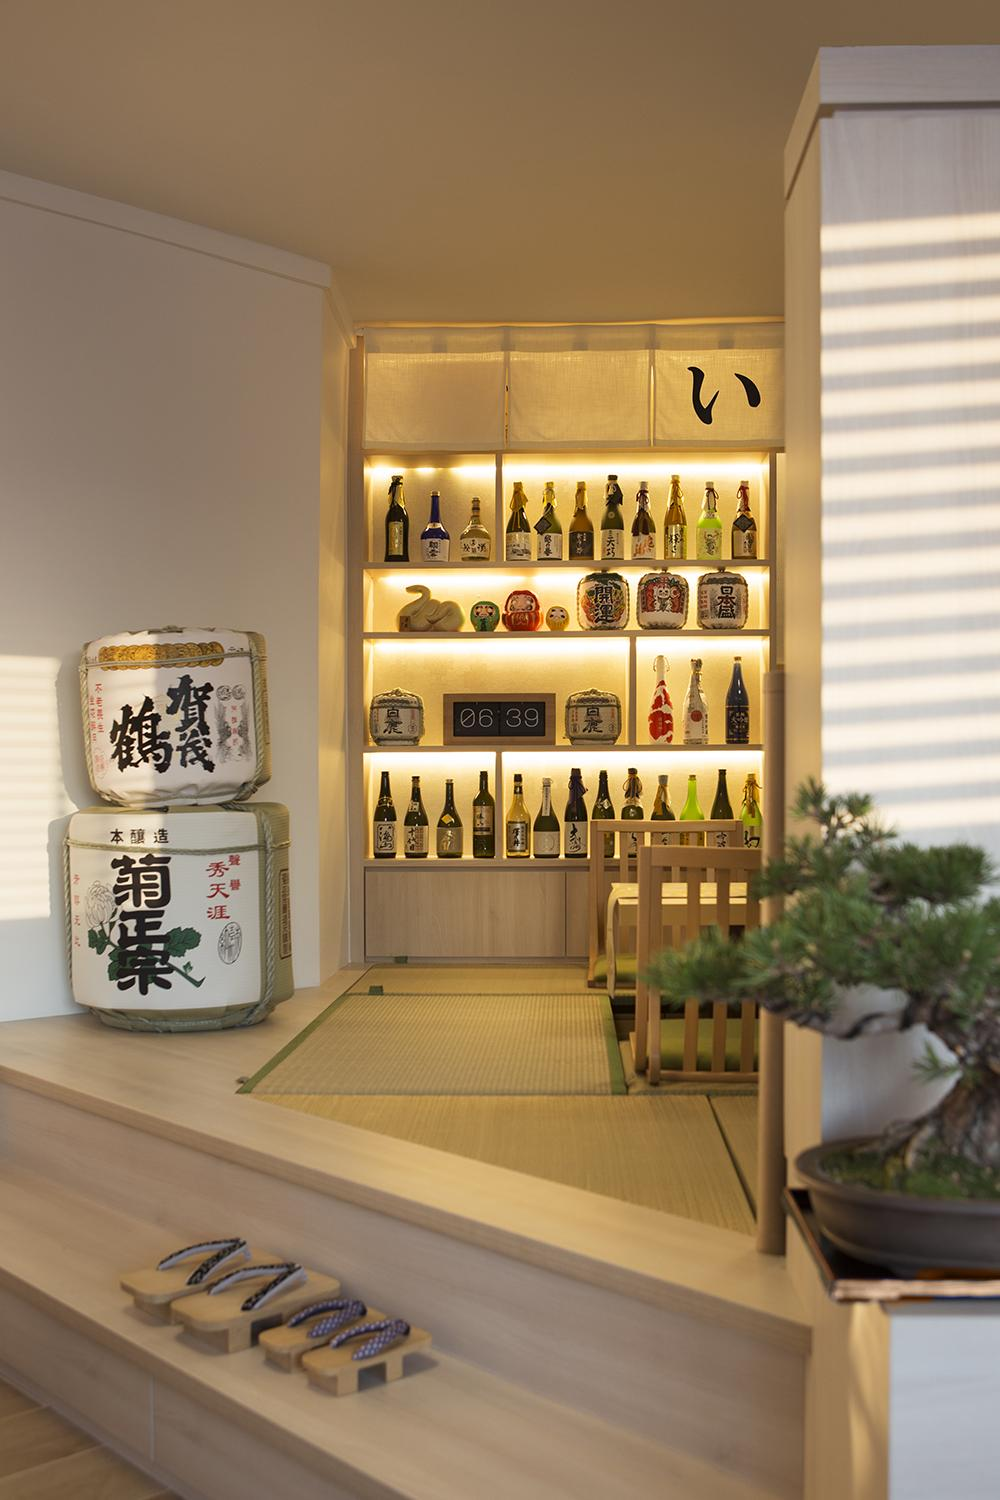 Kanpai Step Inside This Singapore Flat Designed After A Japanese Izakaya And Ryokan Home Journal